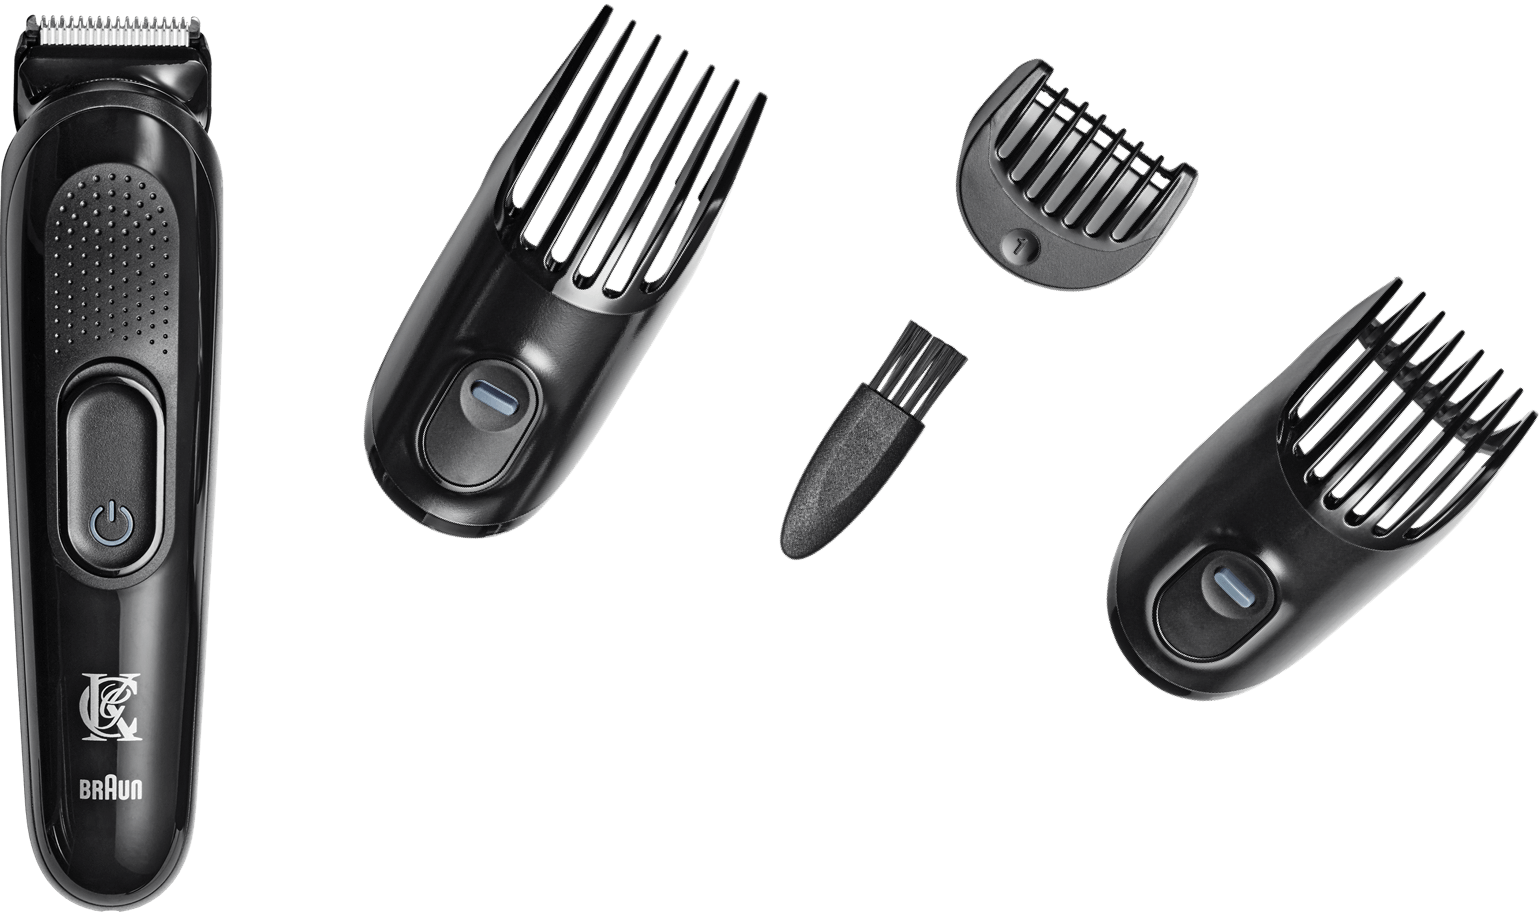 Cordless Men's Beard Trimmer Kit